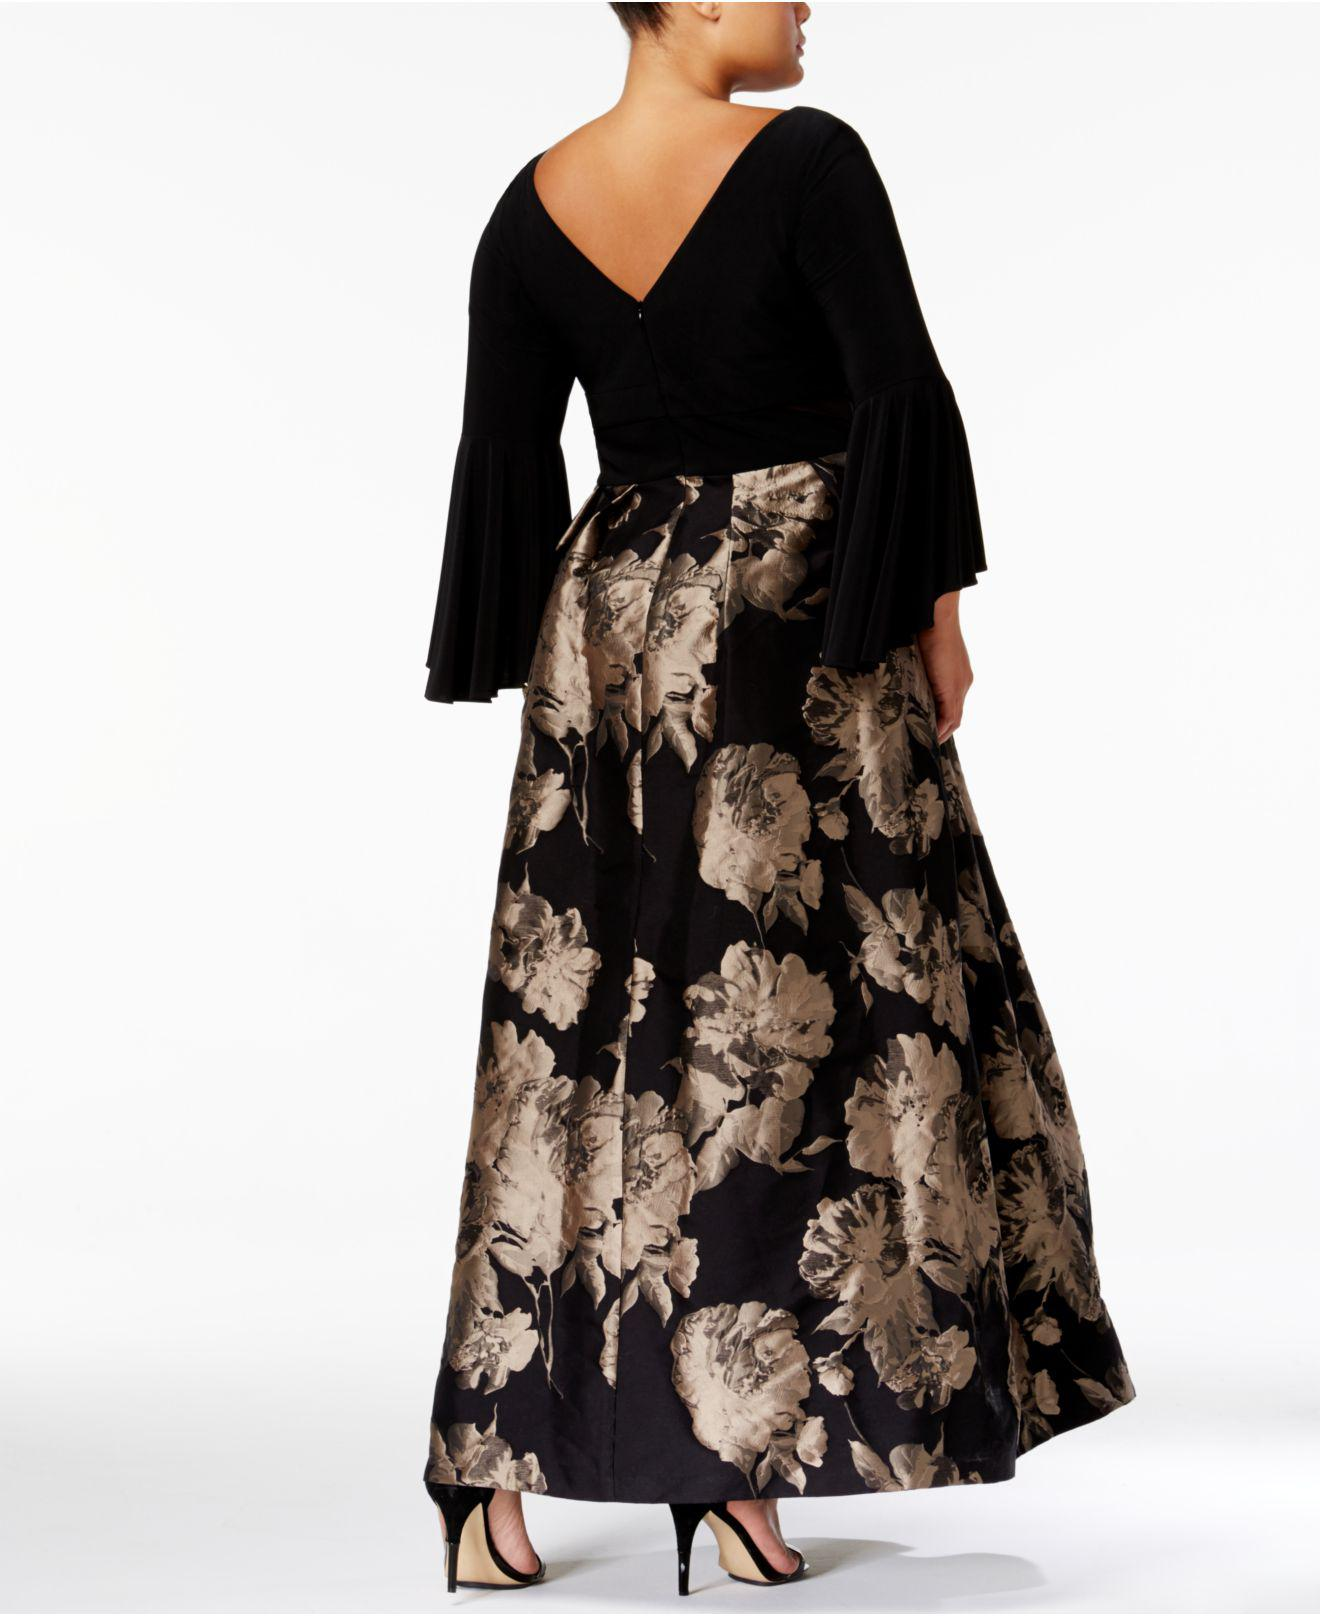 c38916bbb81df Lyst - Xscape Plus Size Brocade Bell-sleeve Gown in Black